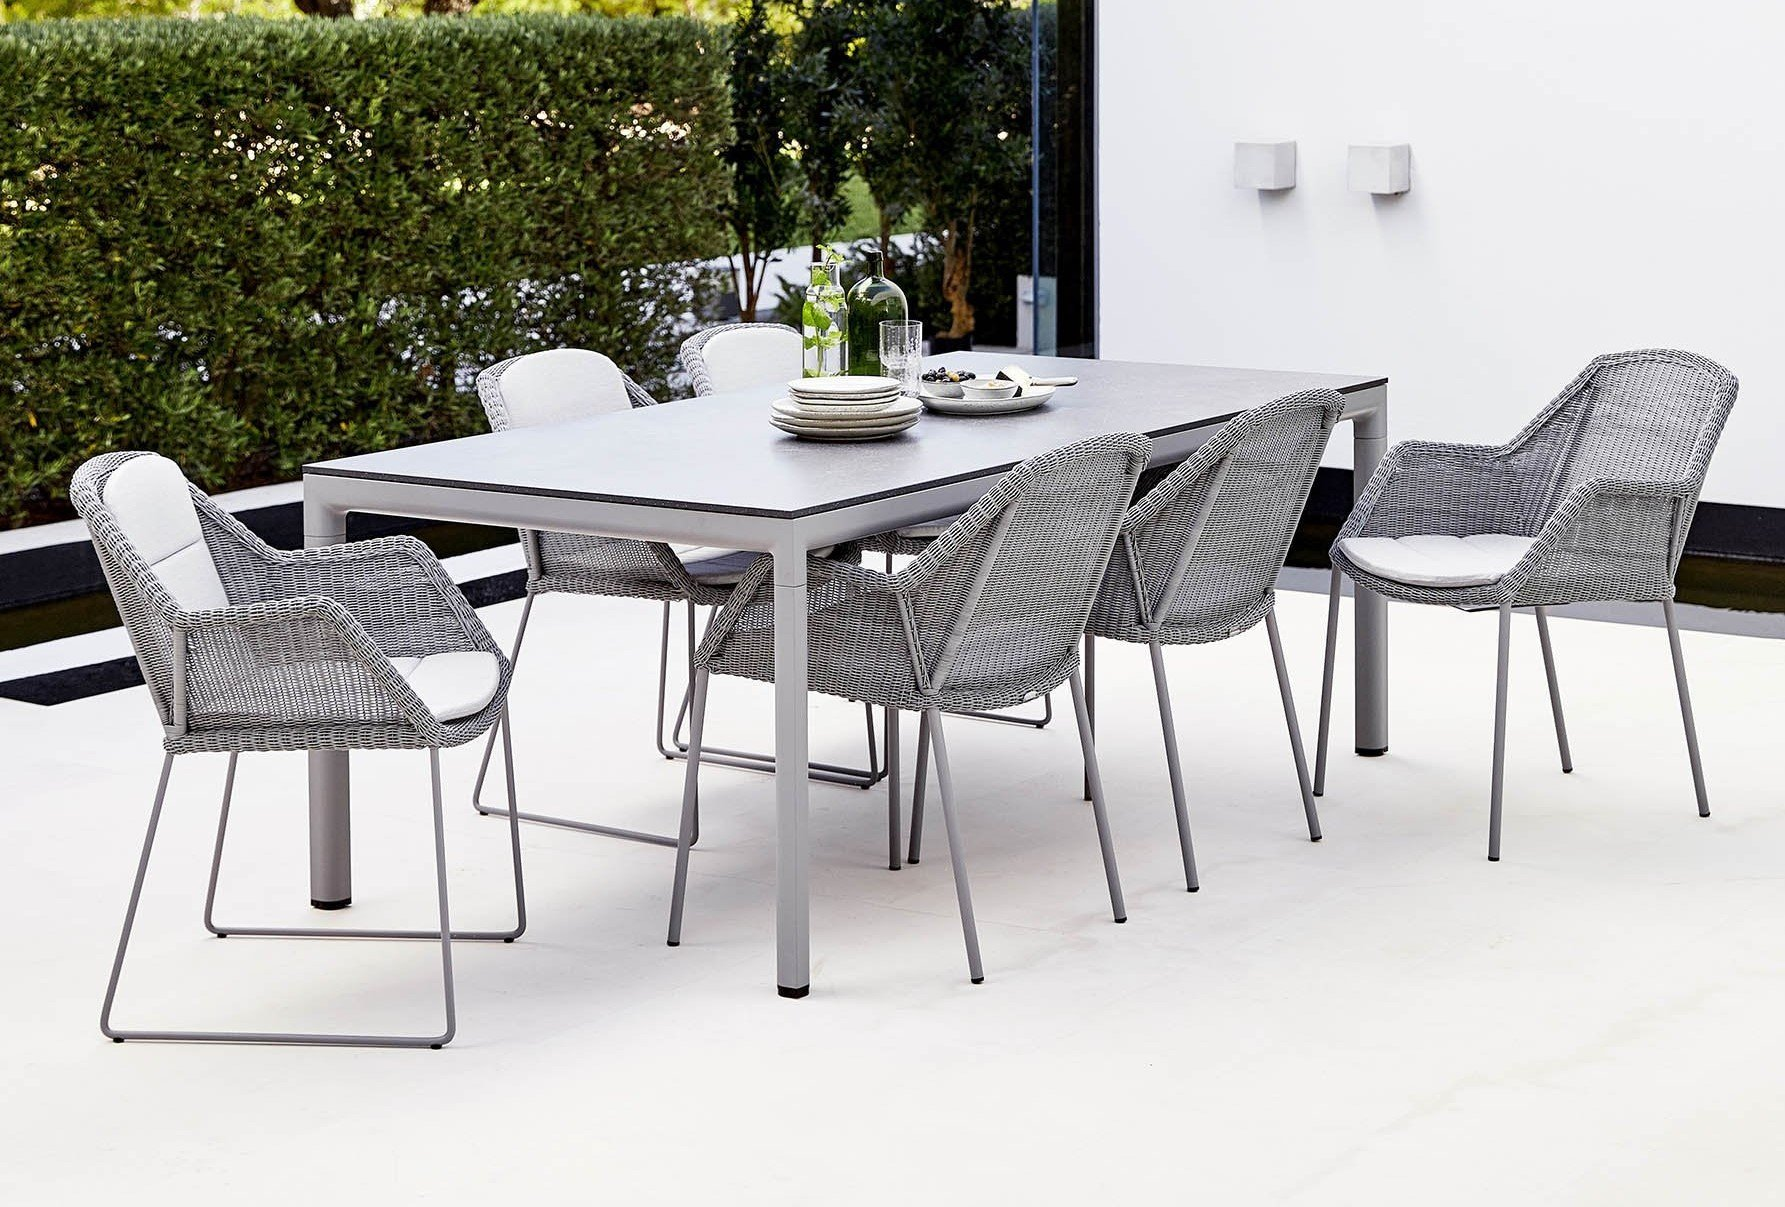 Breeze Dining Chair from Cane-line